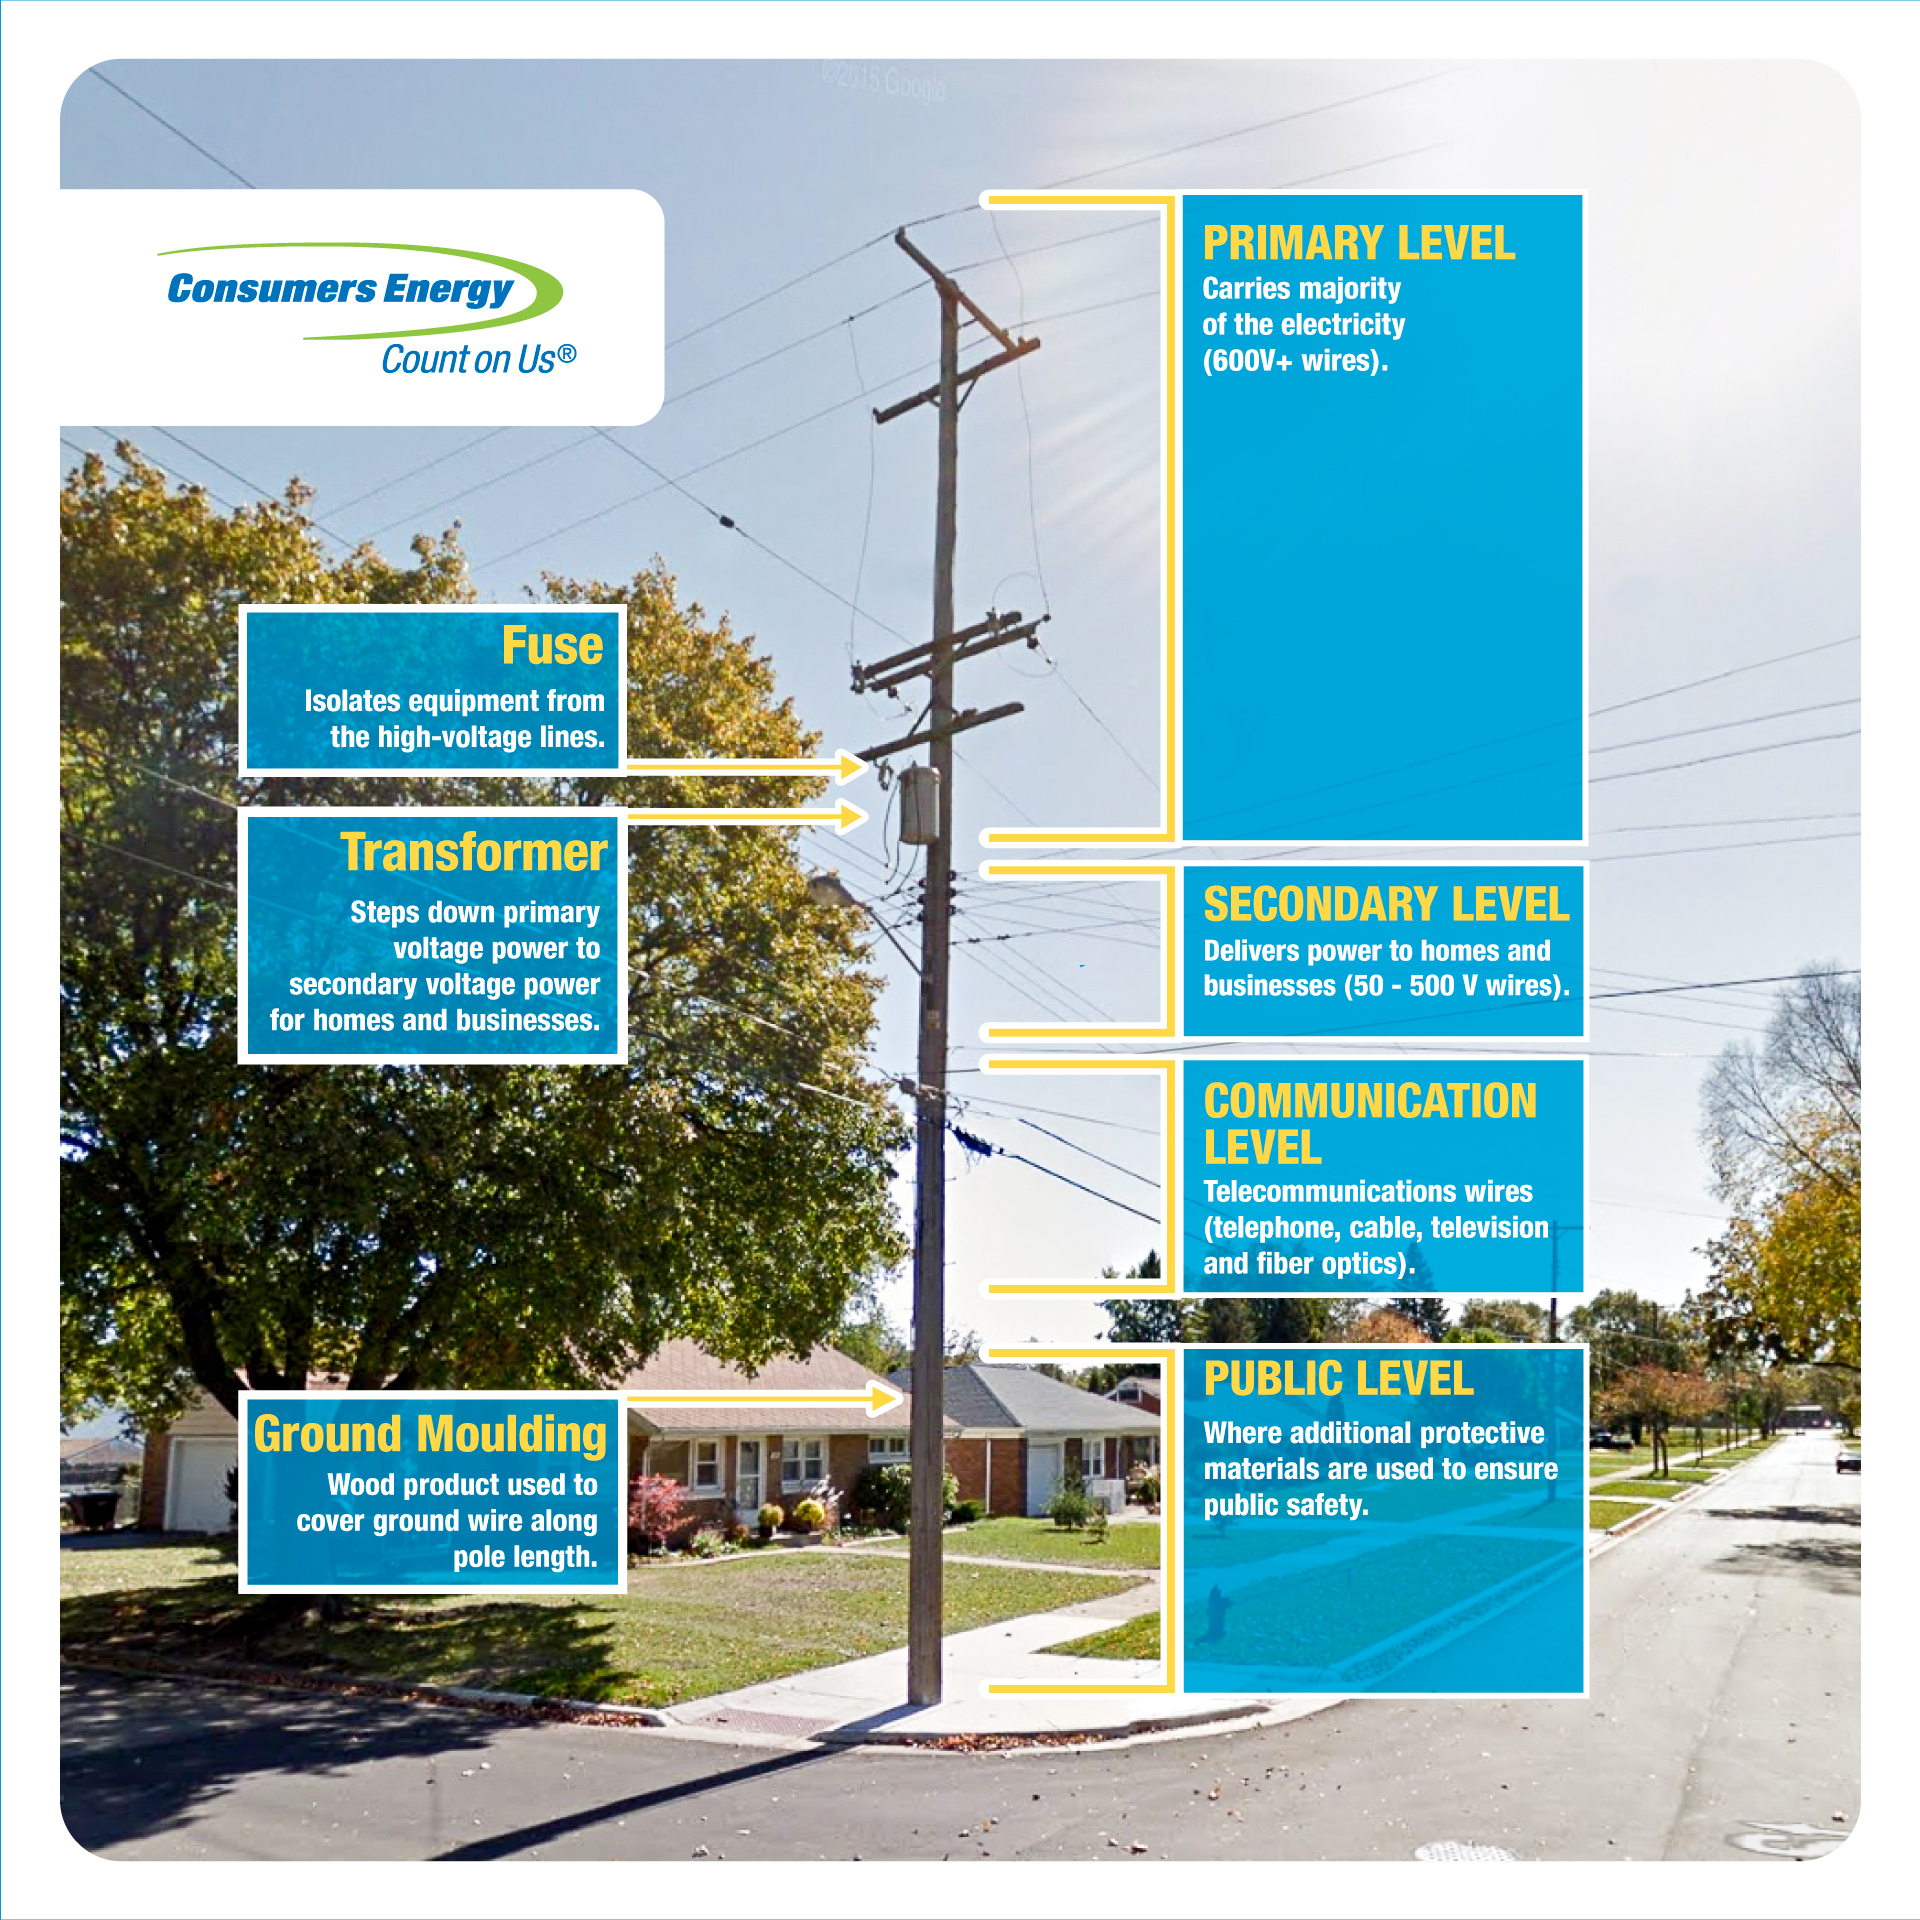 hight resolution of 5 things you didn t know about utility poles consumers energy in utility power poles